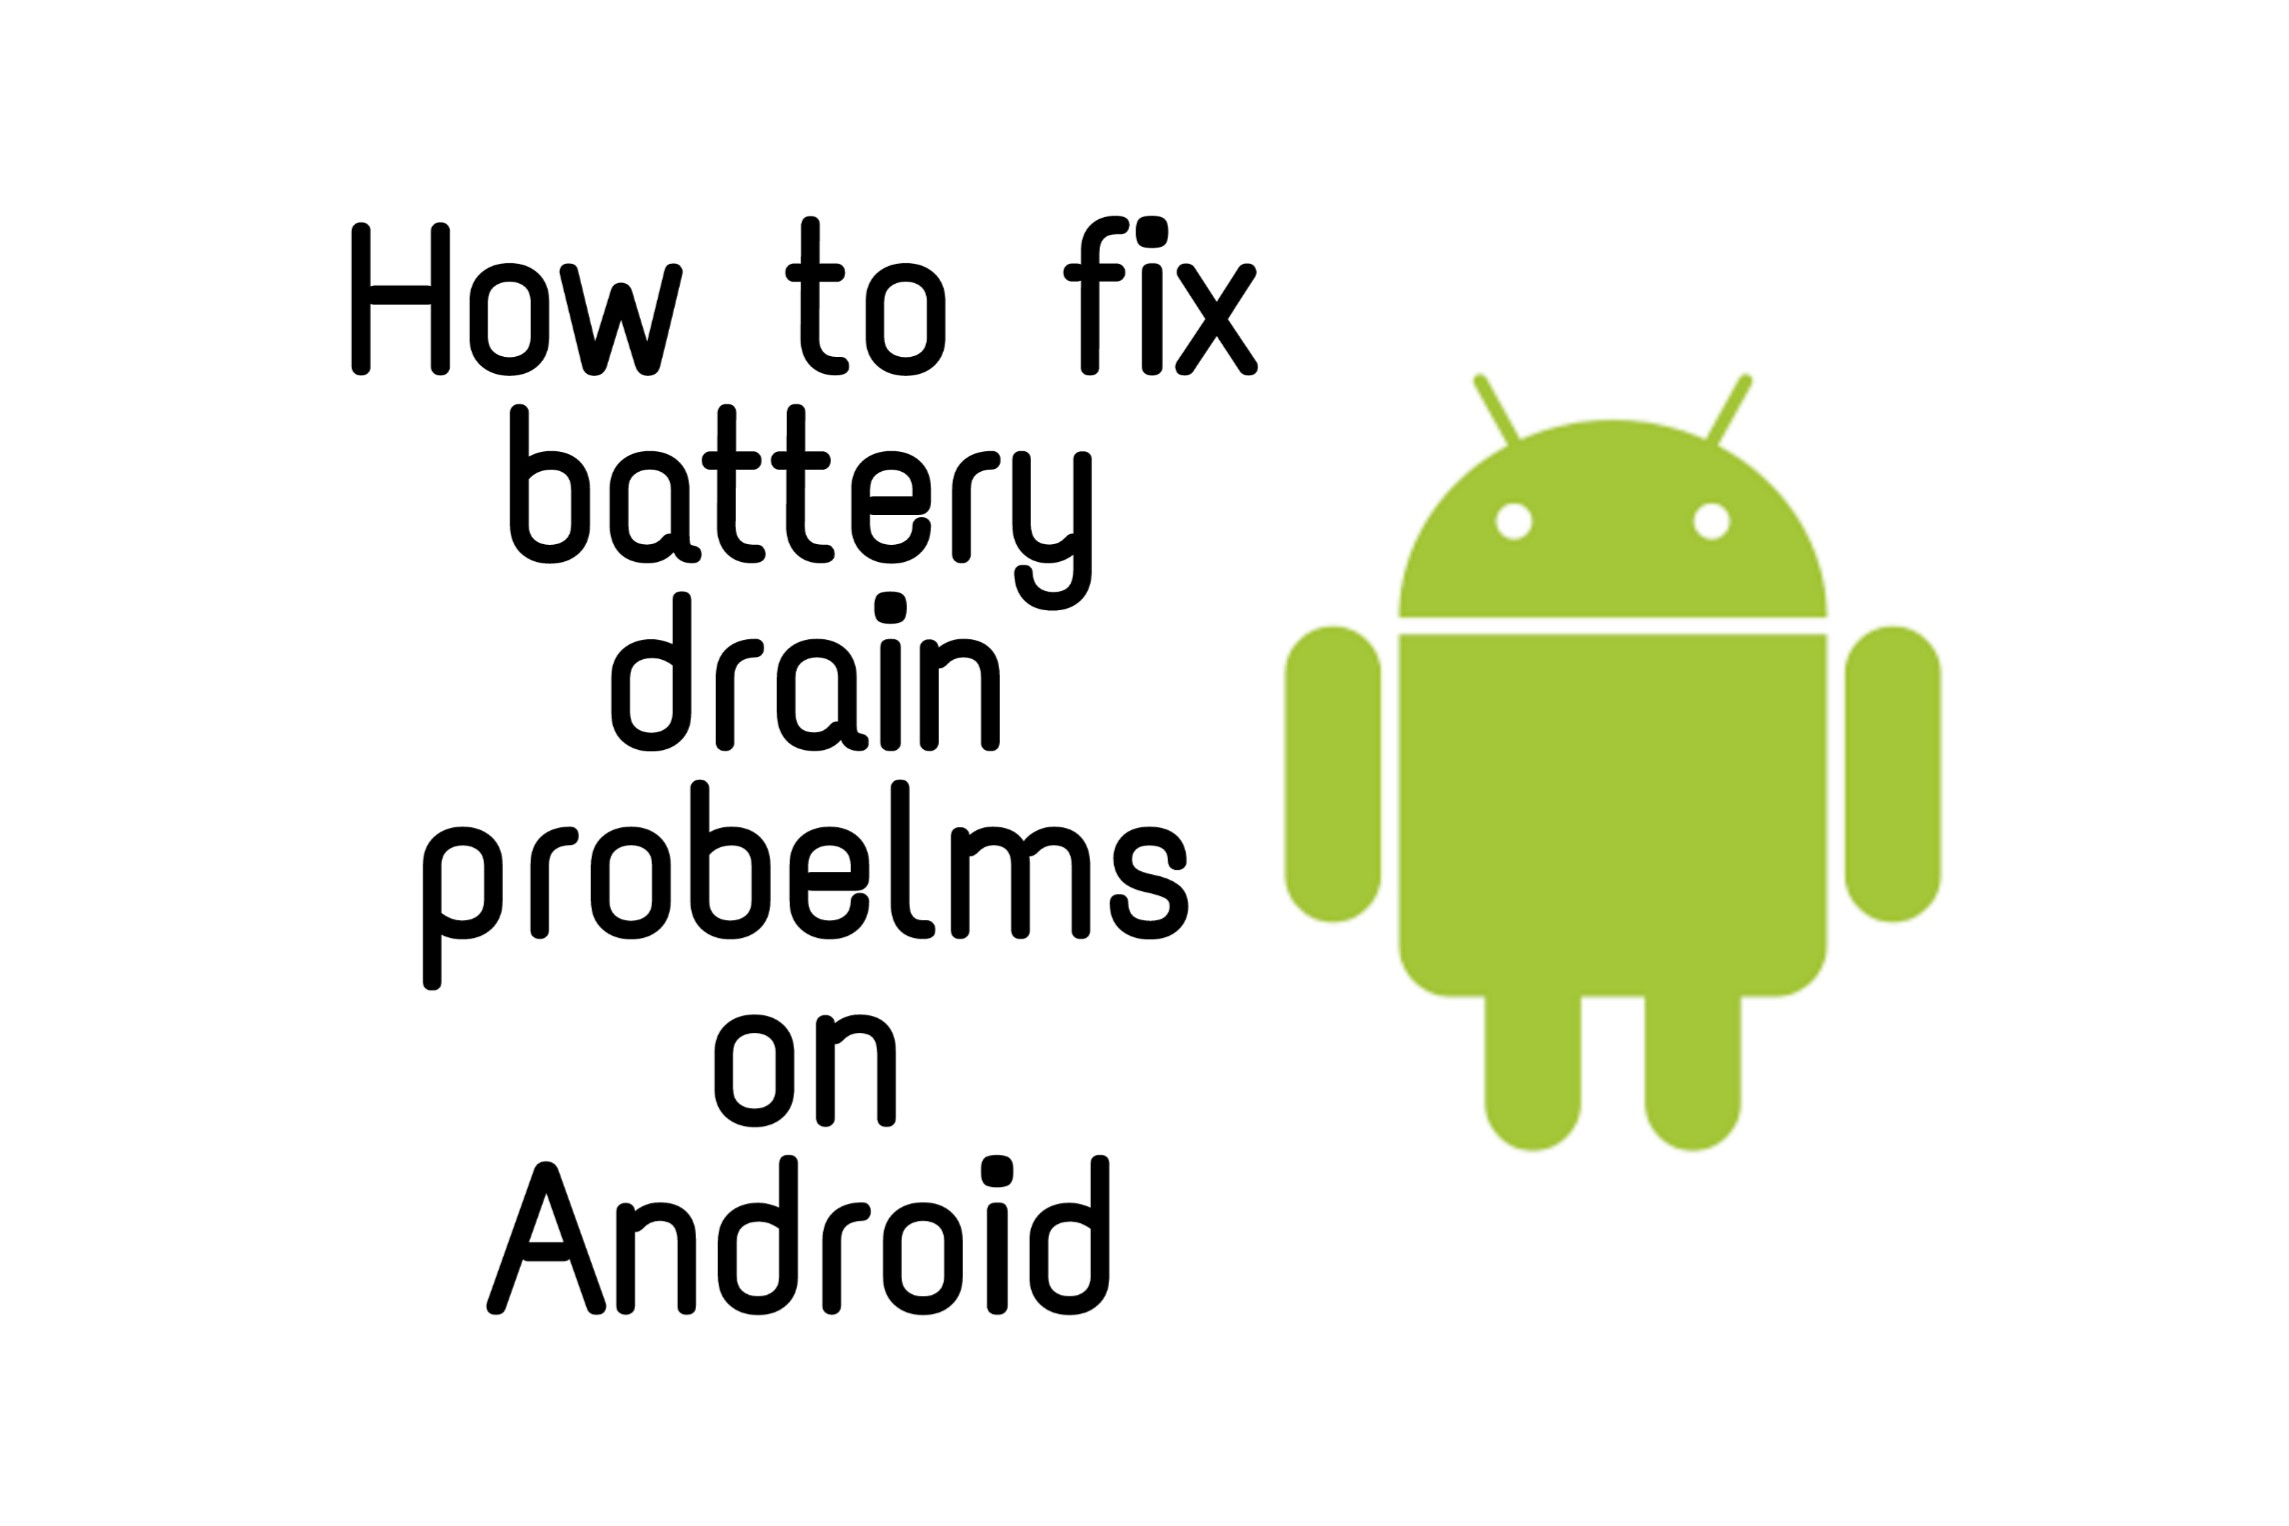 how to fix battery drain problem on Android